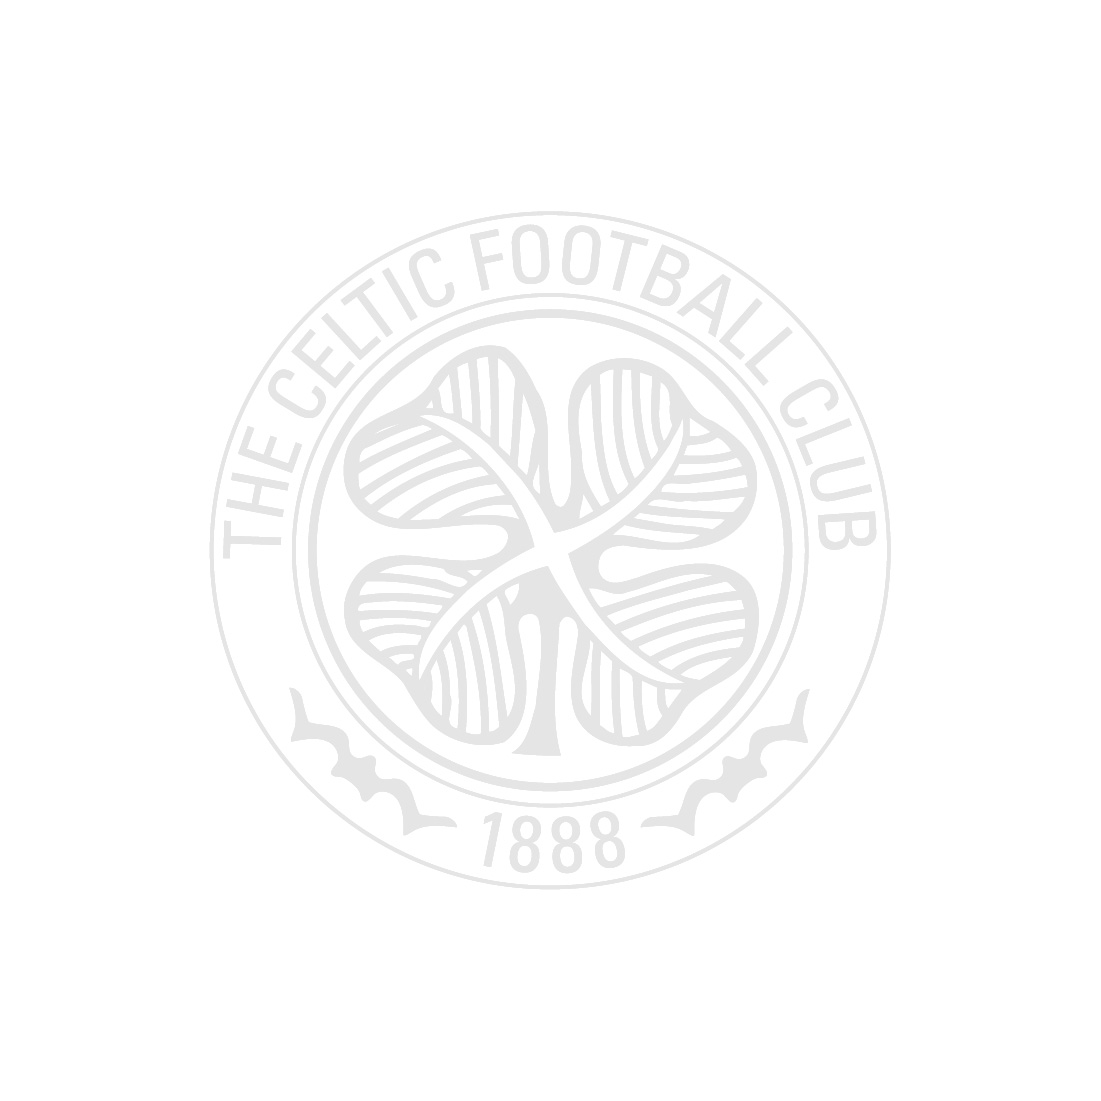 Celtic Away Kit Wristband